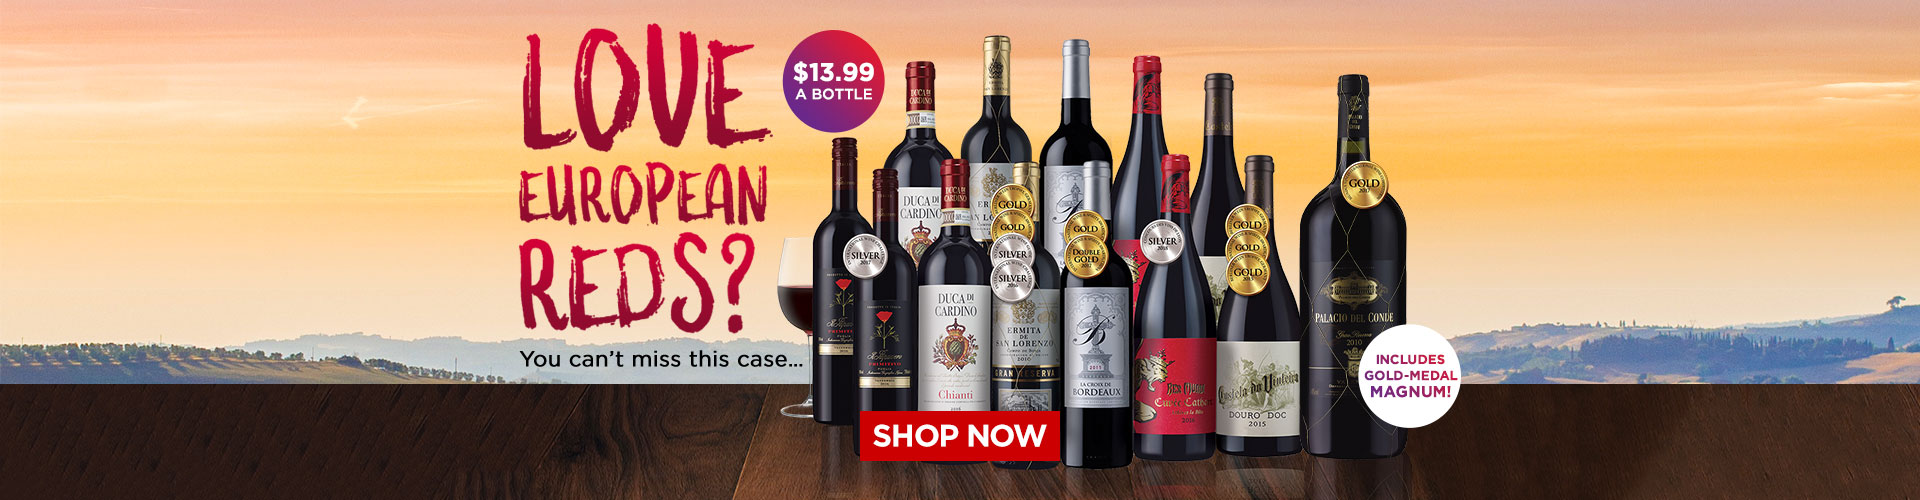 LOVE European Reds? You can't miss this case - Shop Now